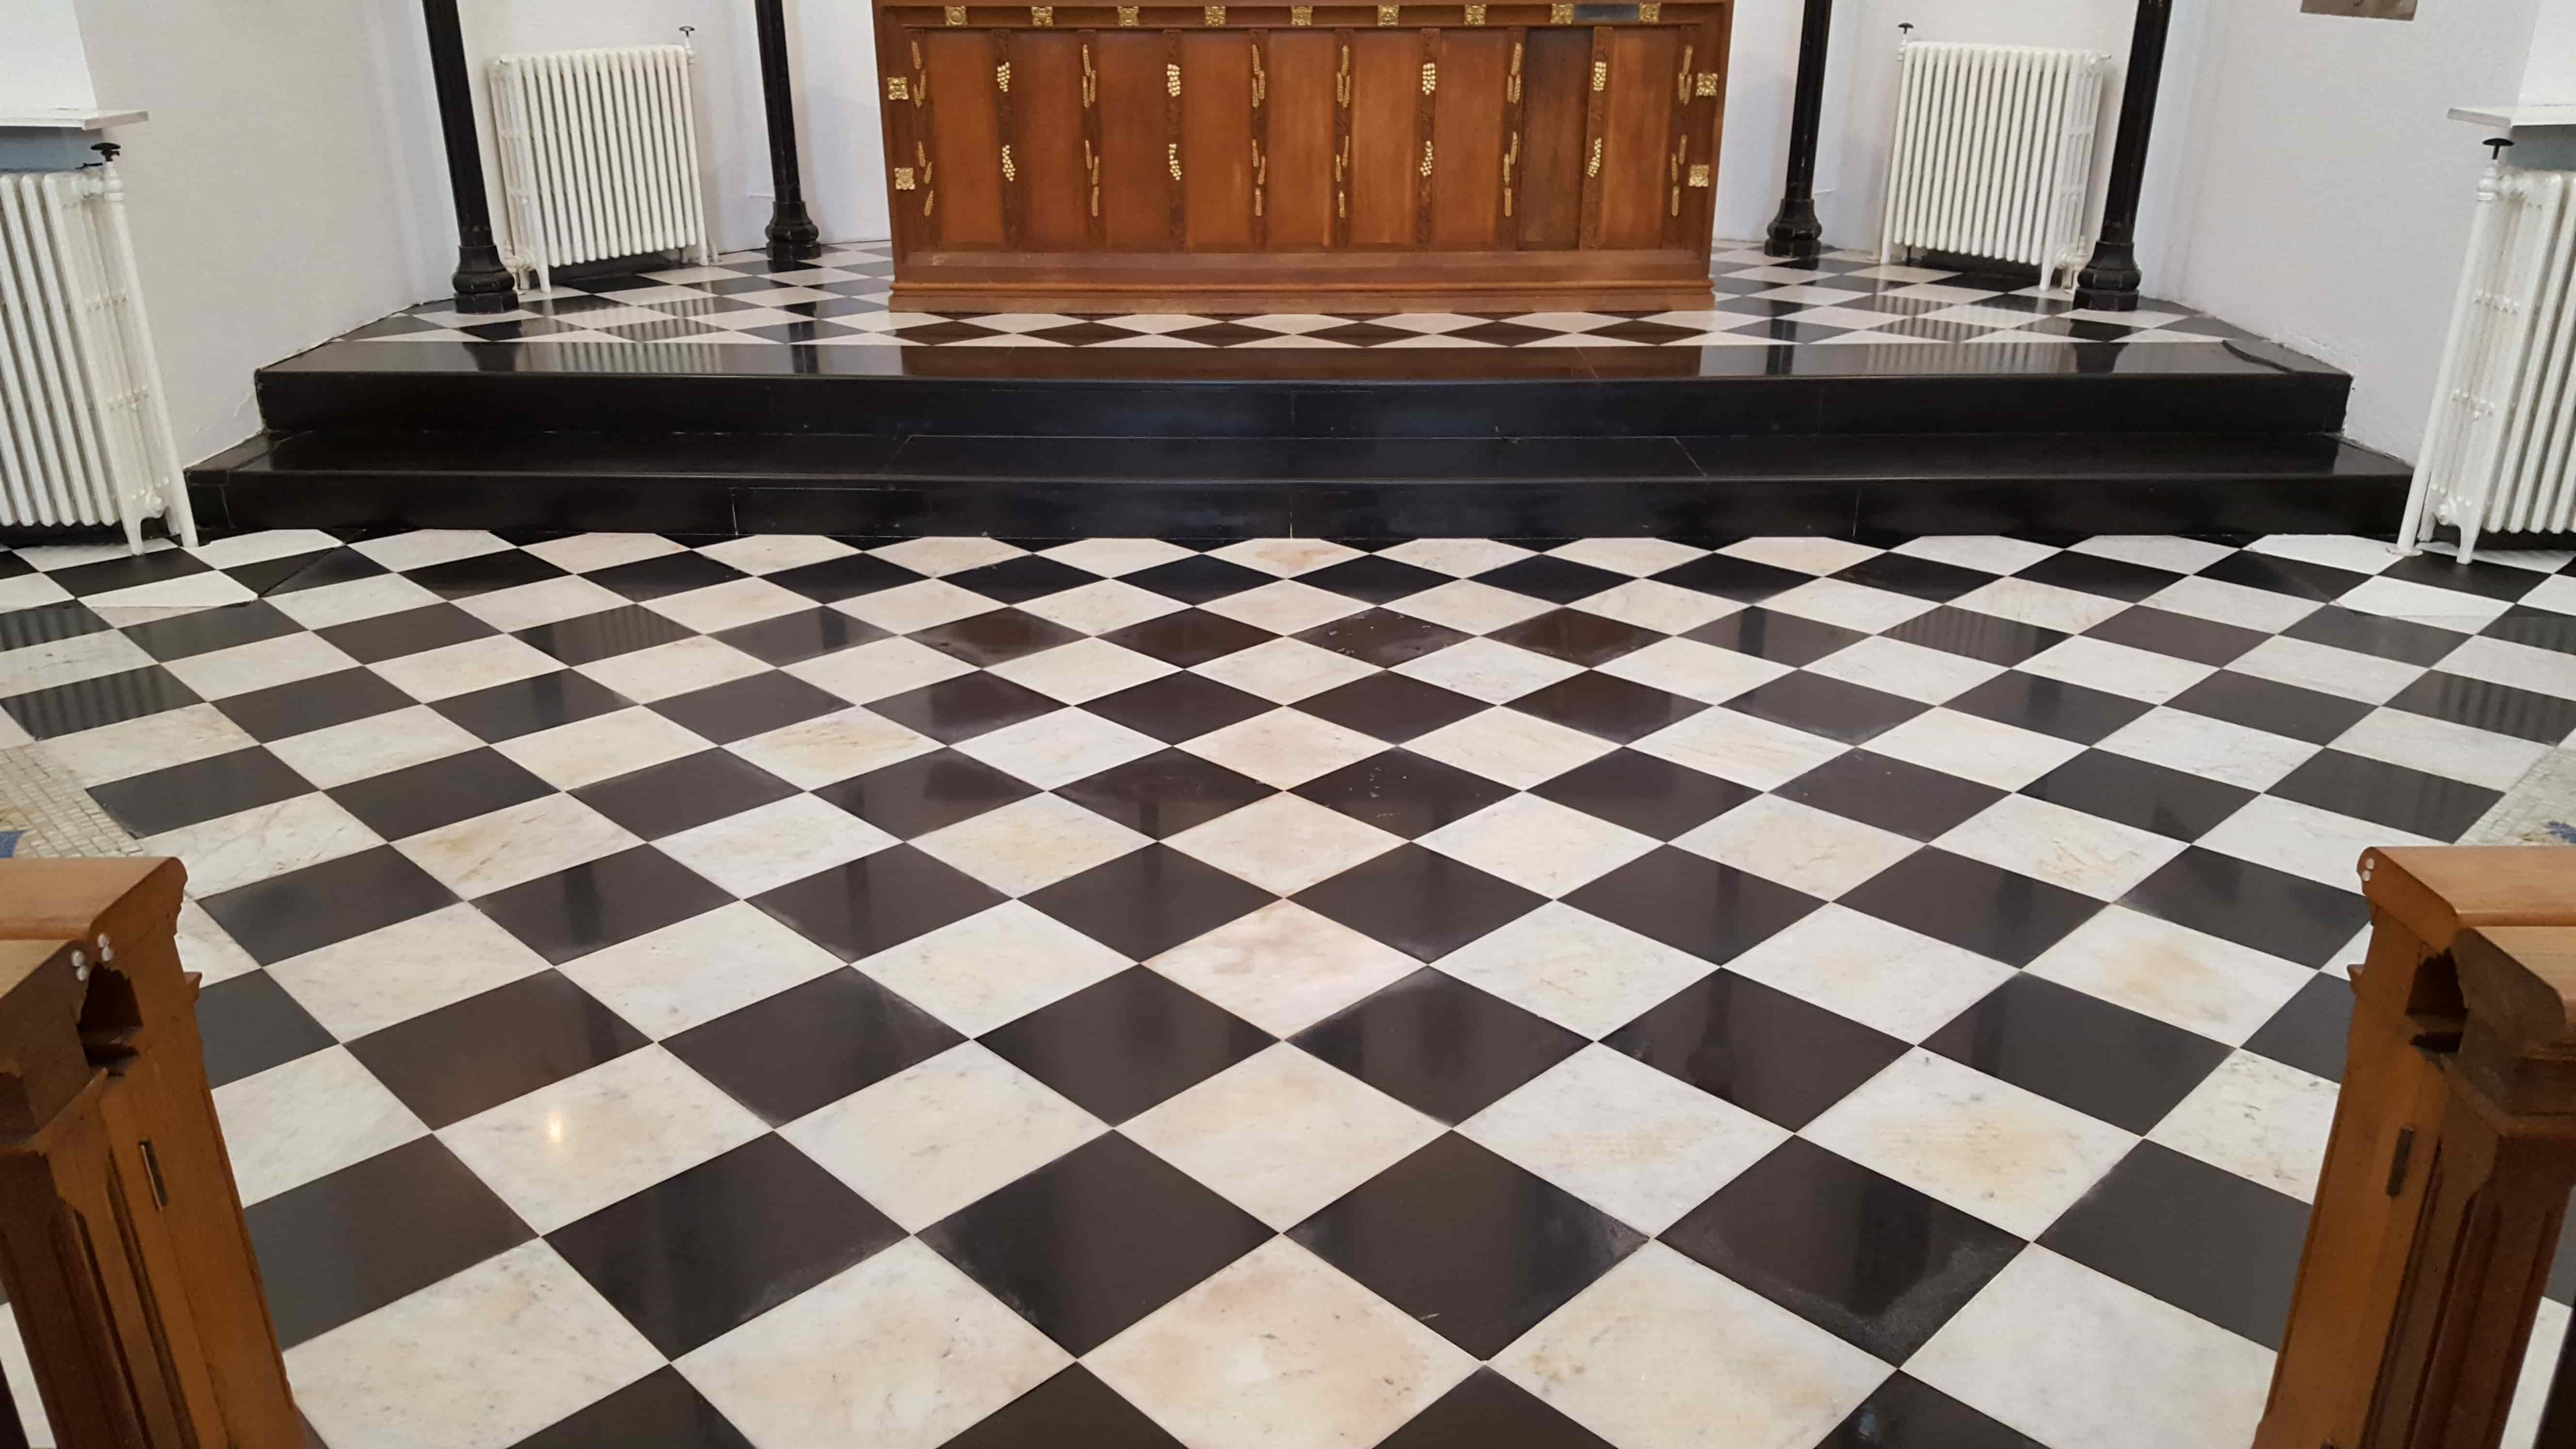 Marble Church Floor After Renovation Ely